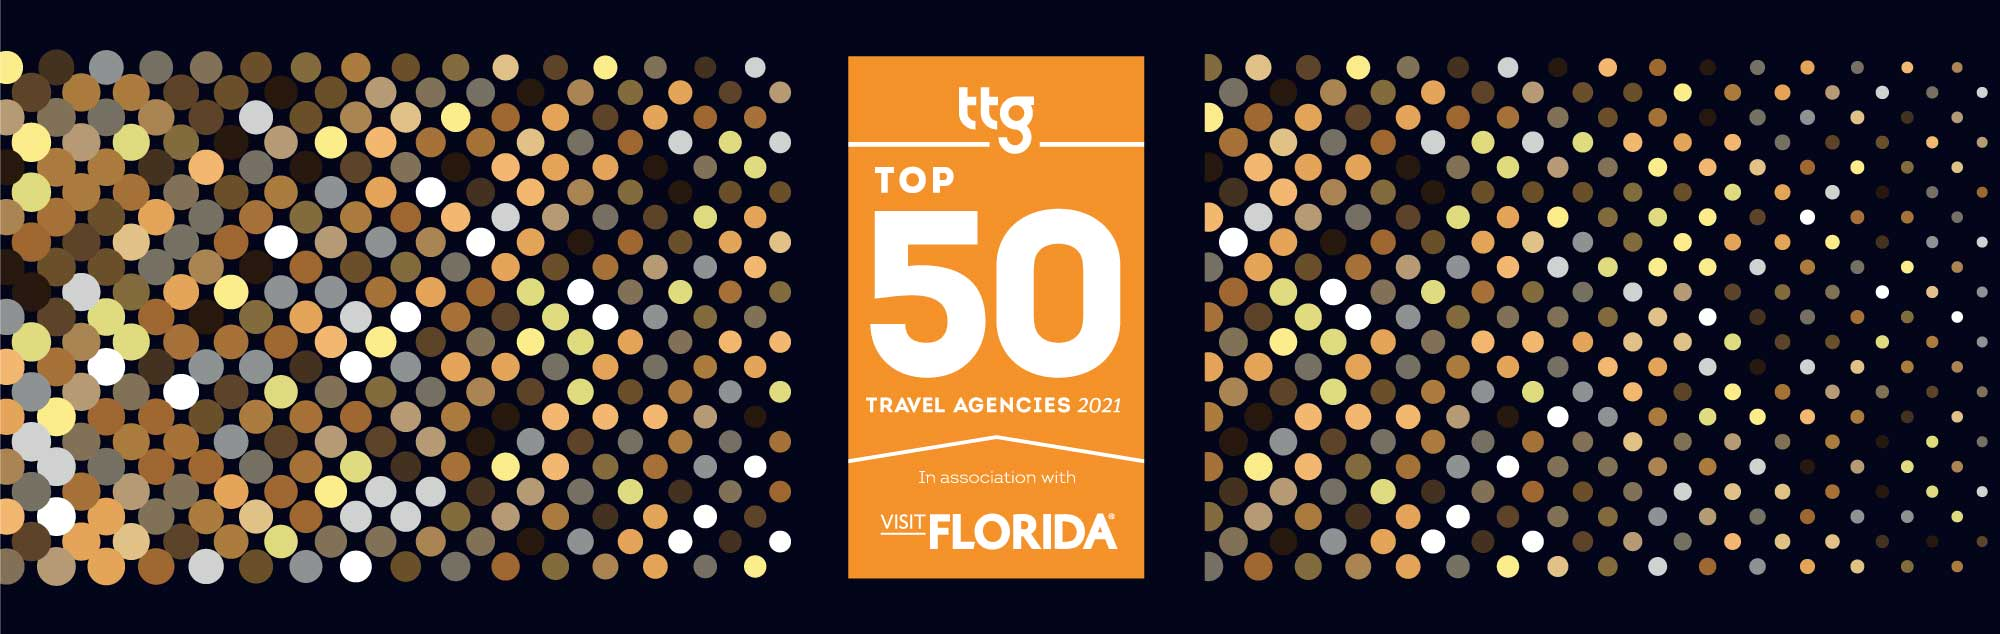 TTG Top 50 Travel Agencies 2021